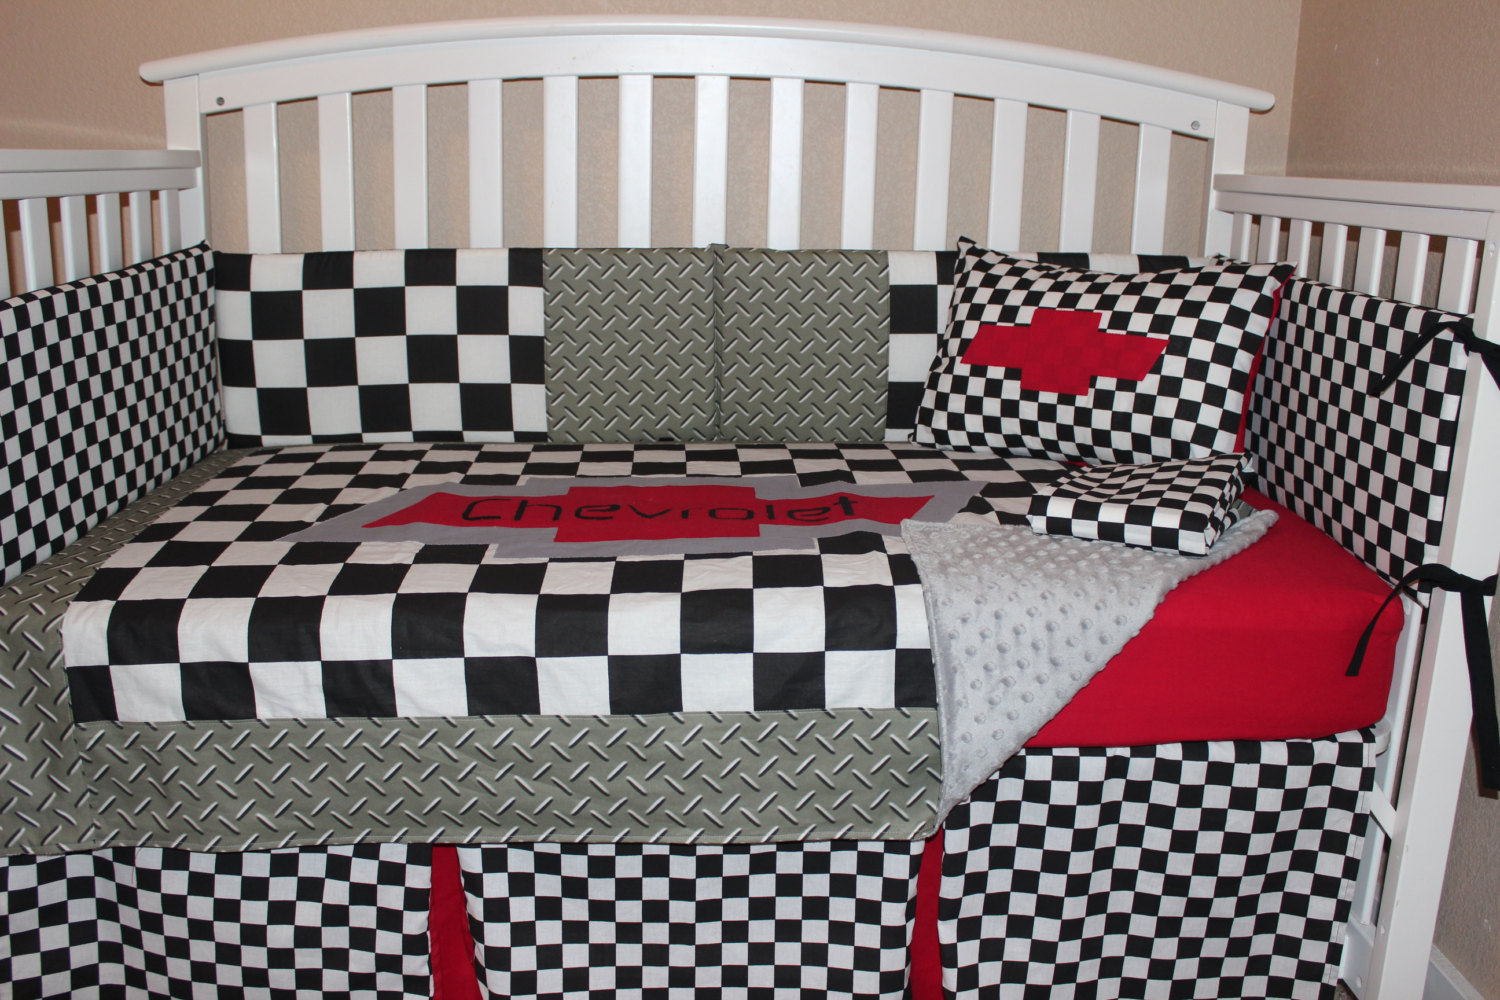 Full Crib Bedding Sets Chevrolet 6 Piece Crib Bedding Set